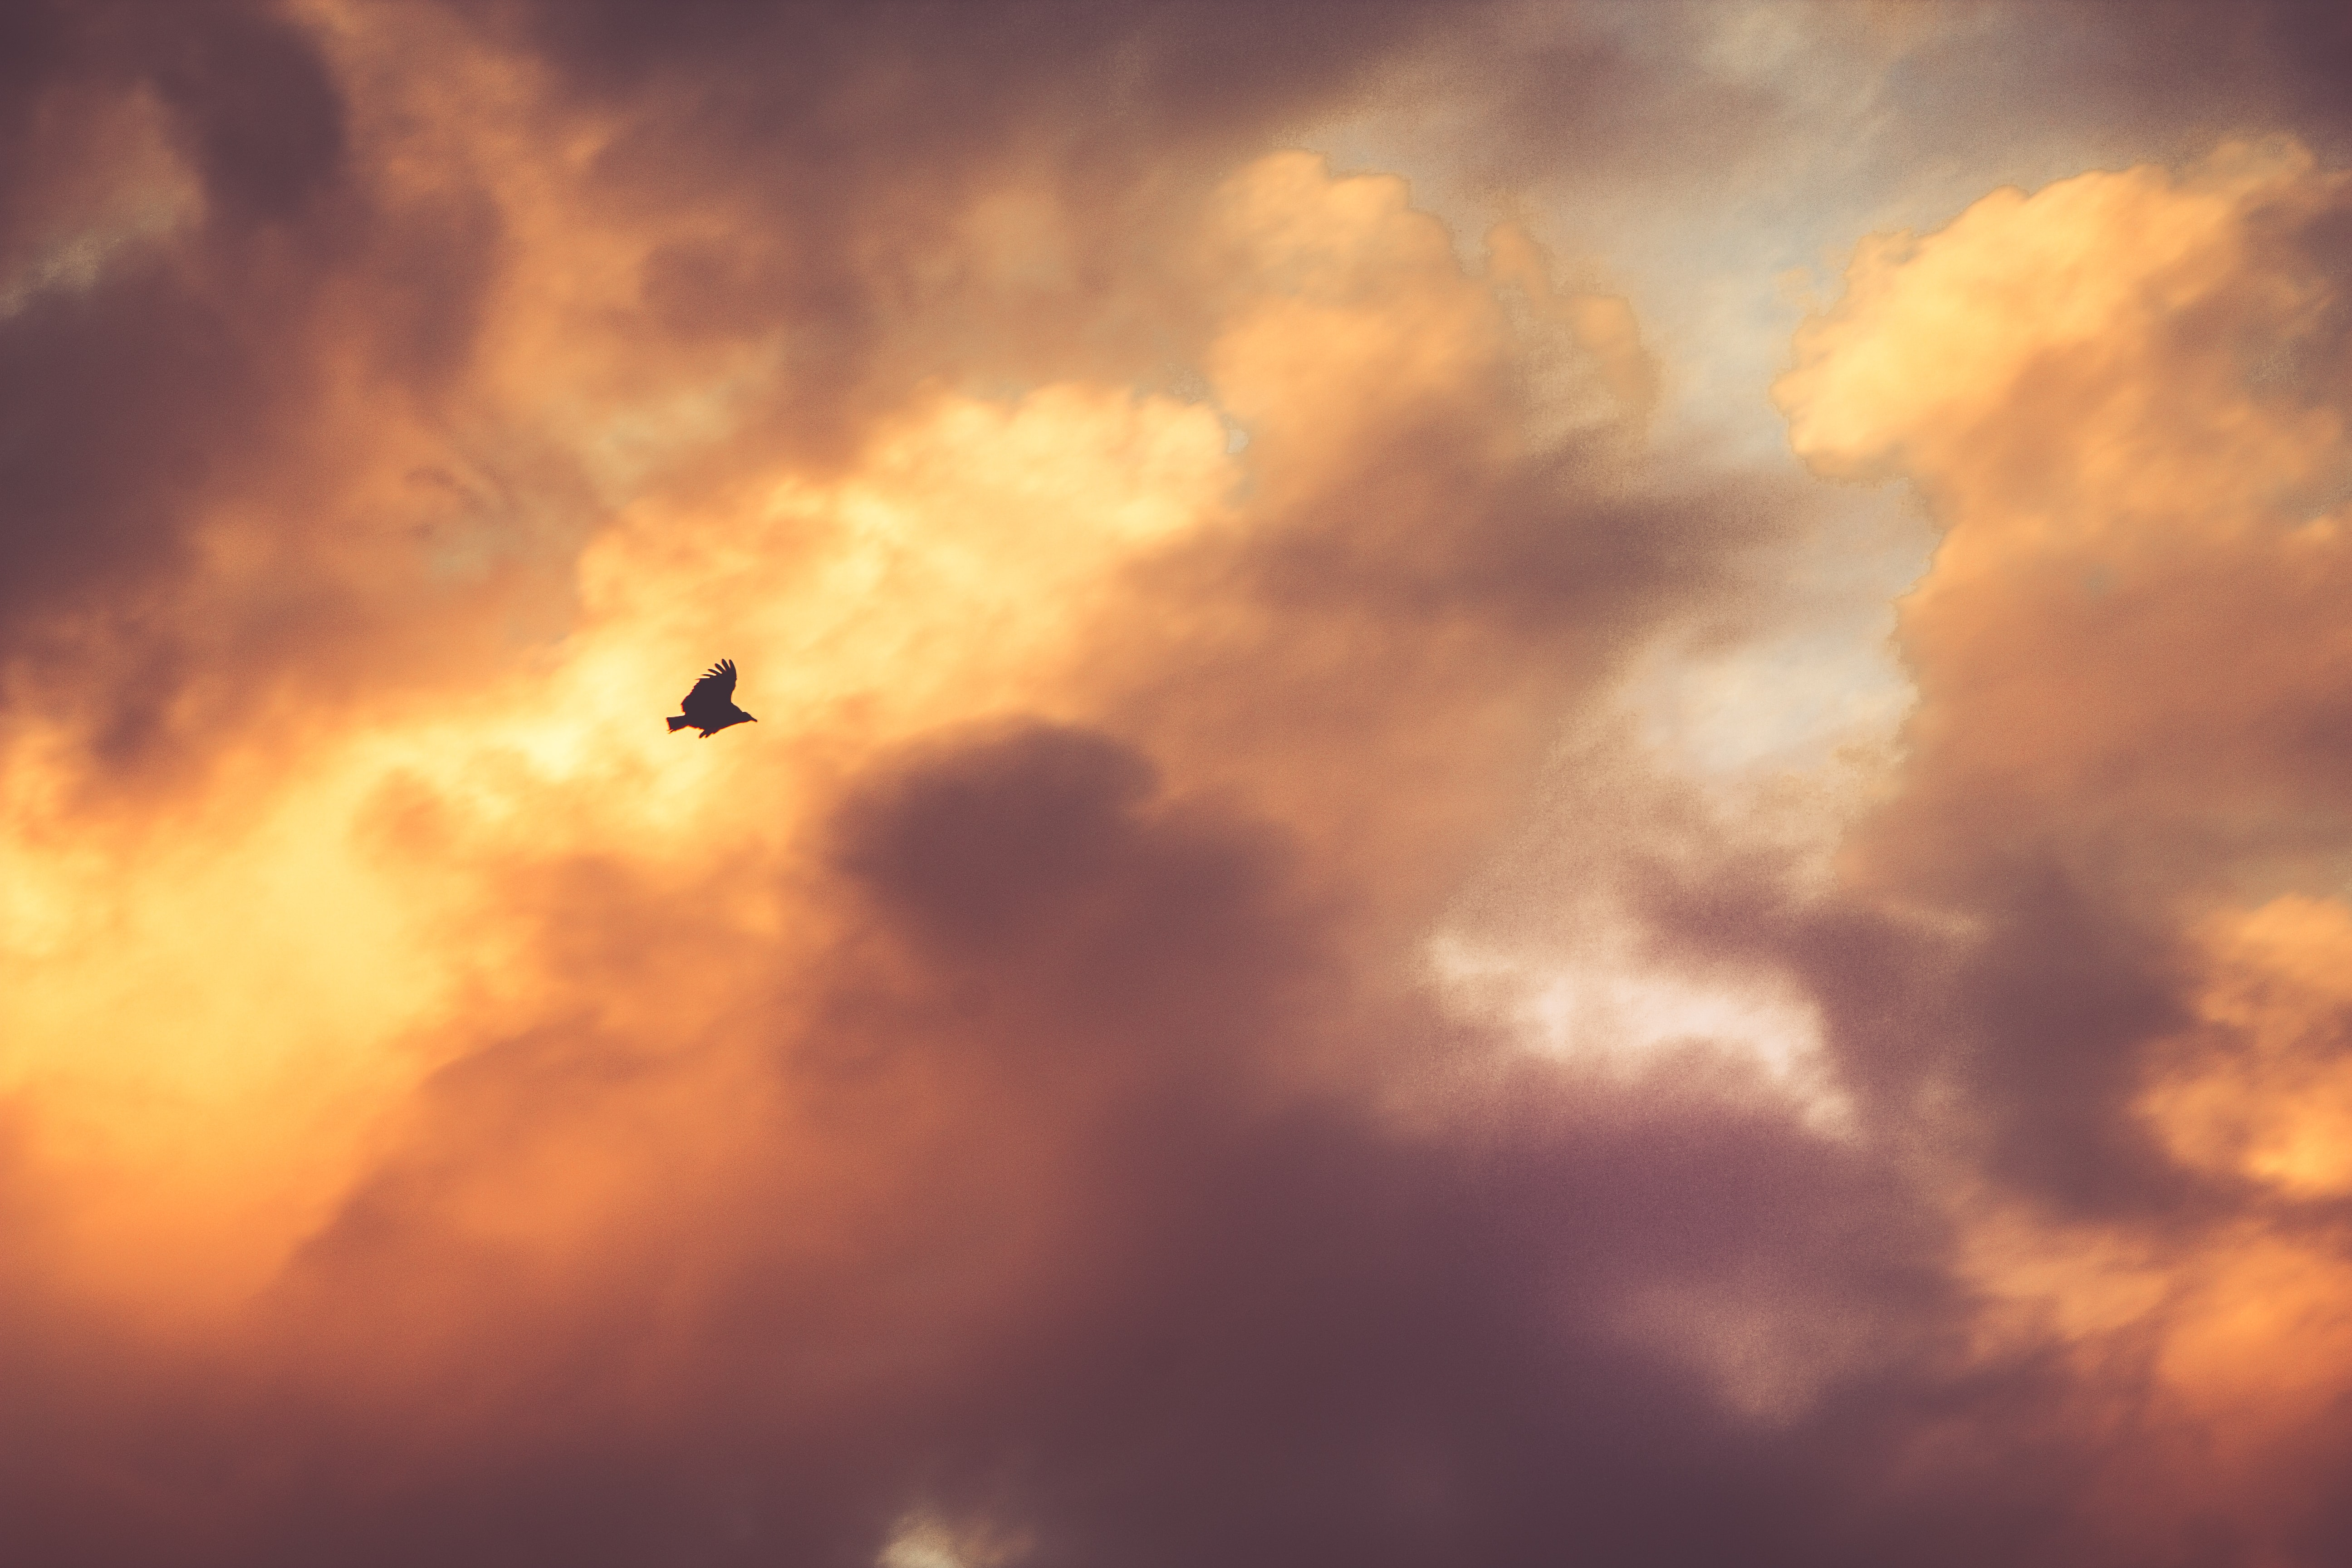 A dark silhouette of a bird against a fiery sky during sunset